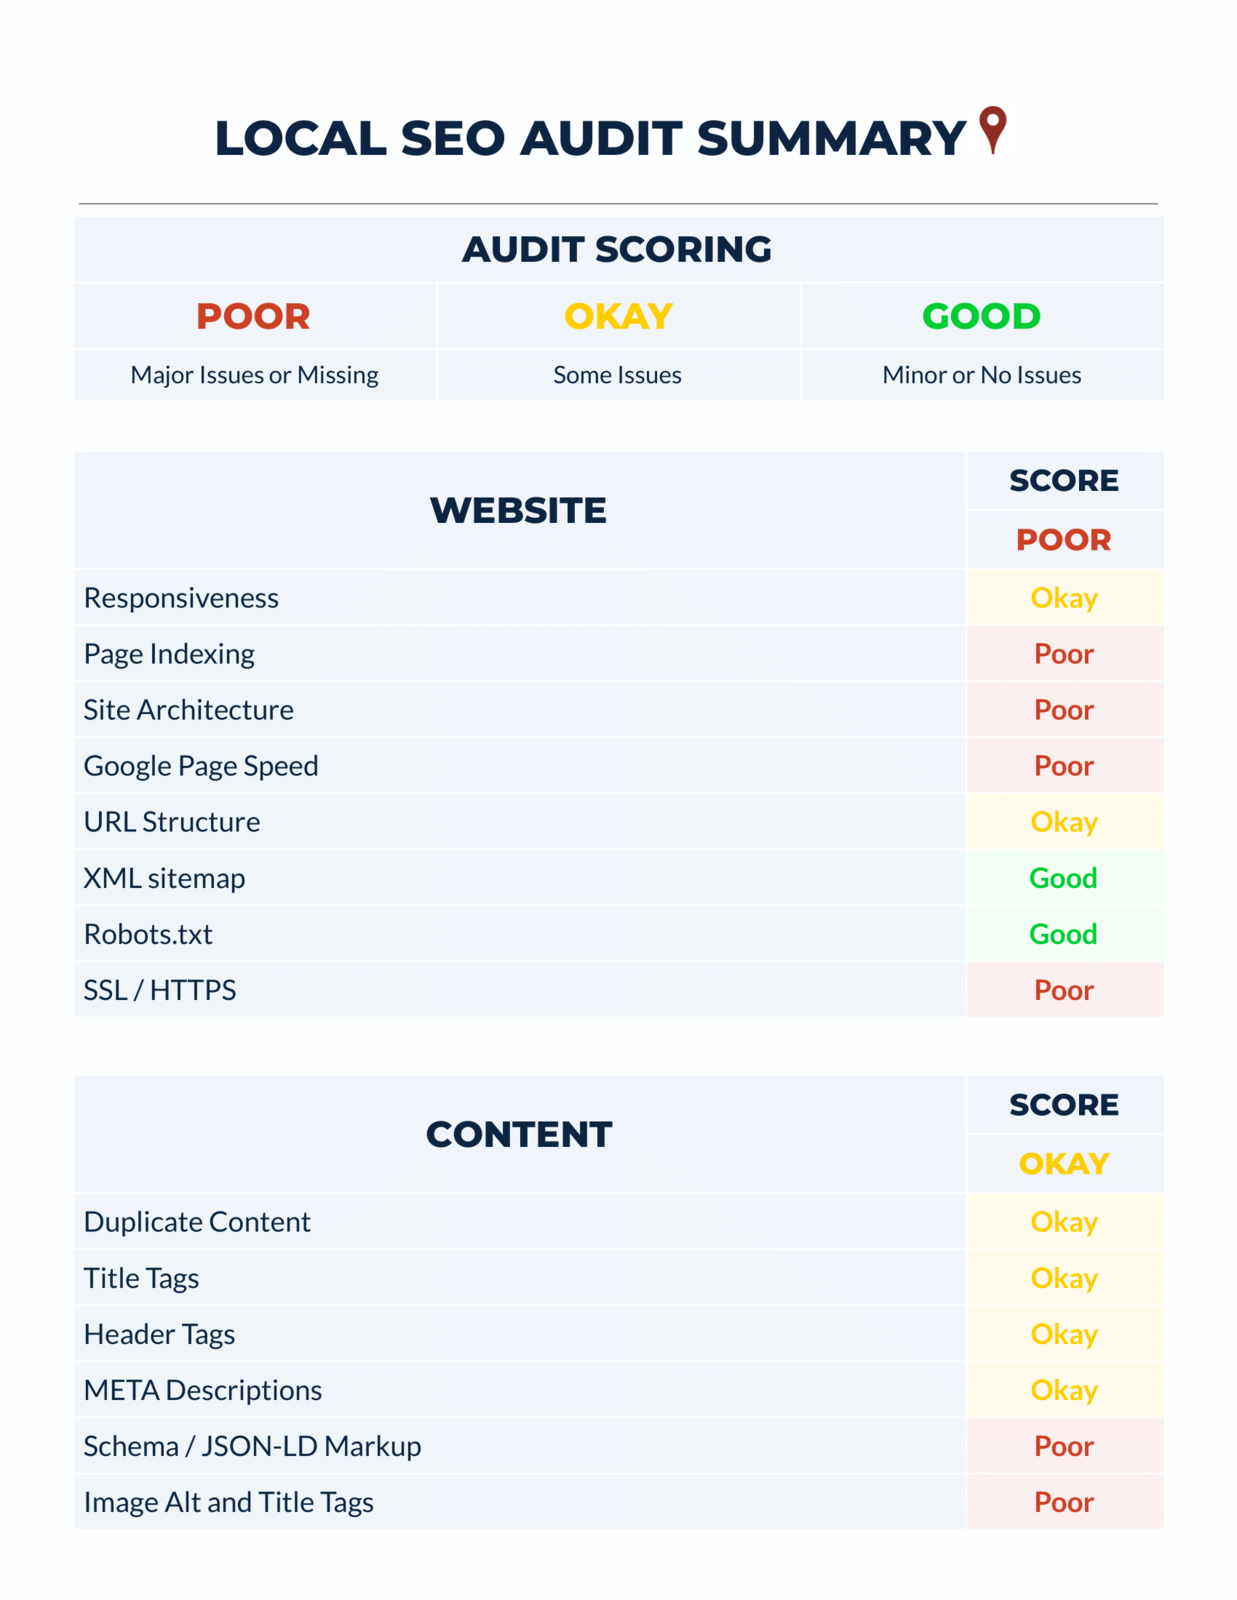 LOCAL-SEO-AUDIT-SUMMARY.png